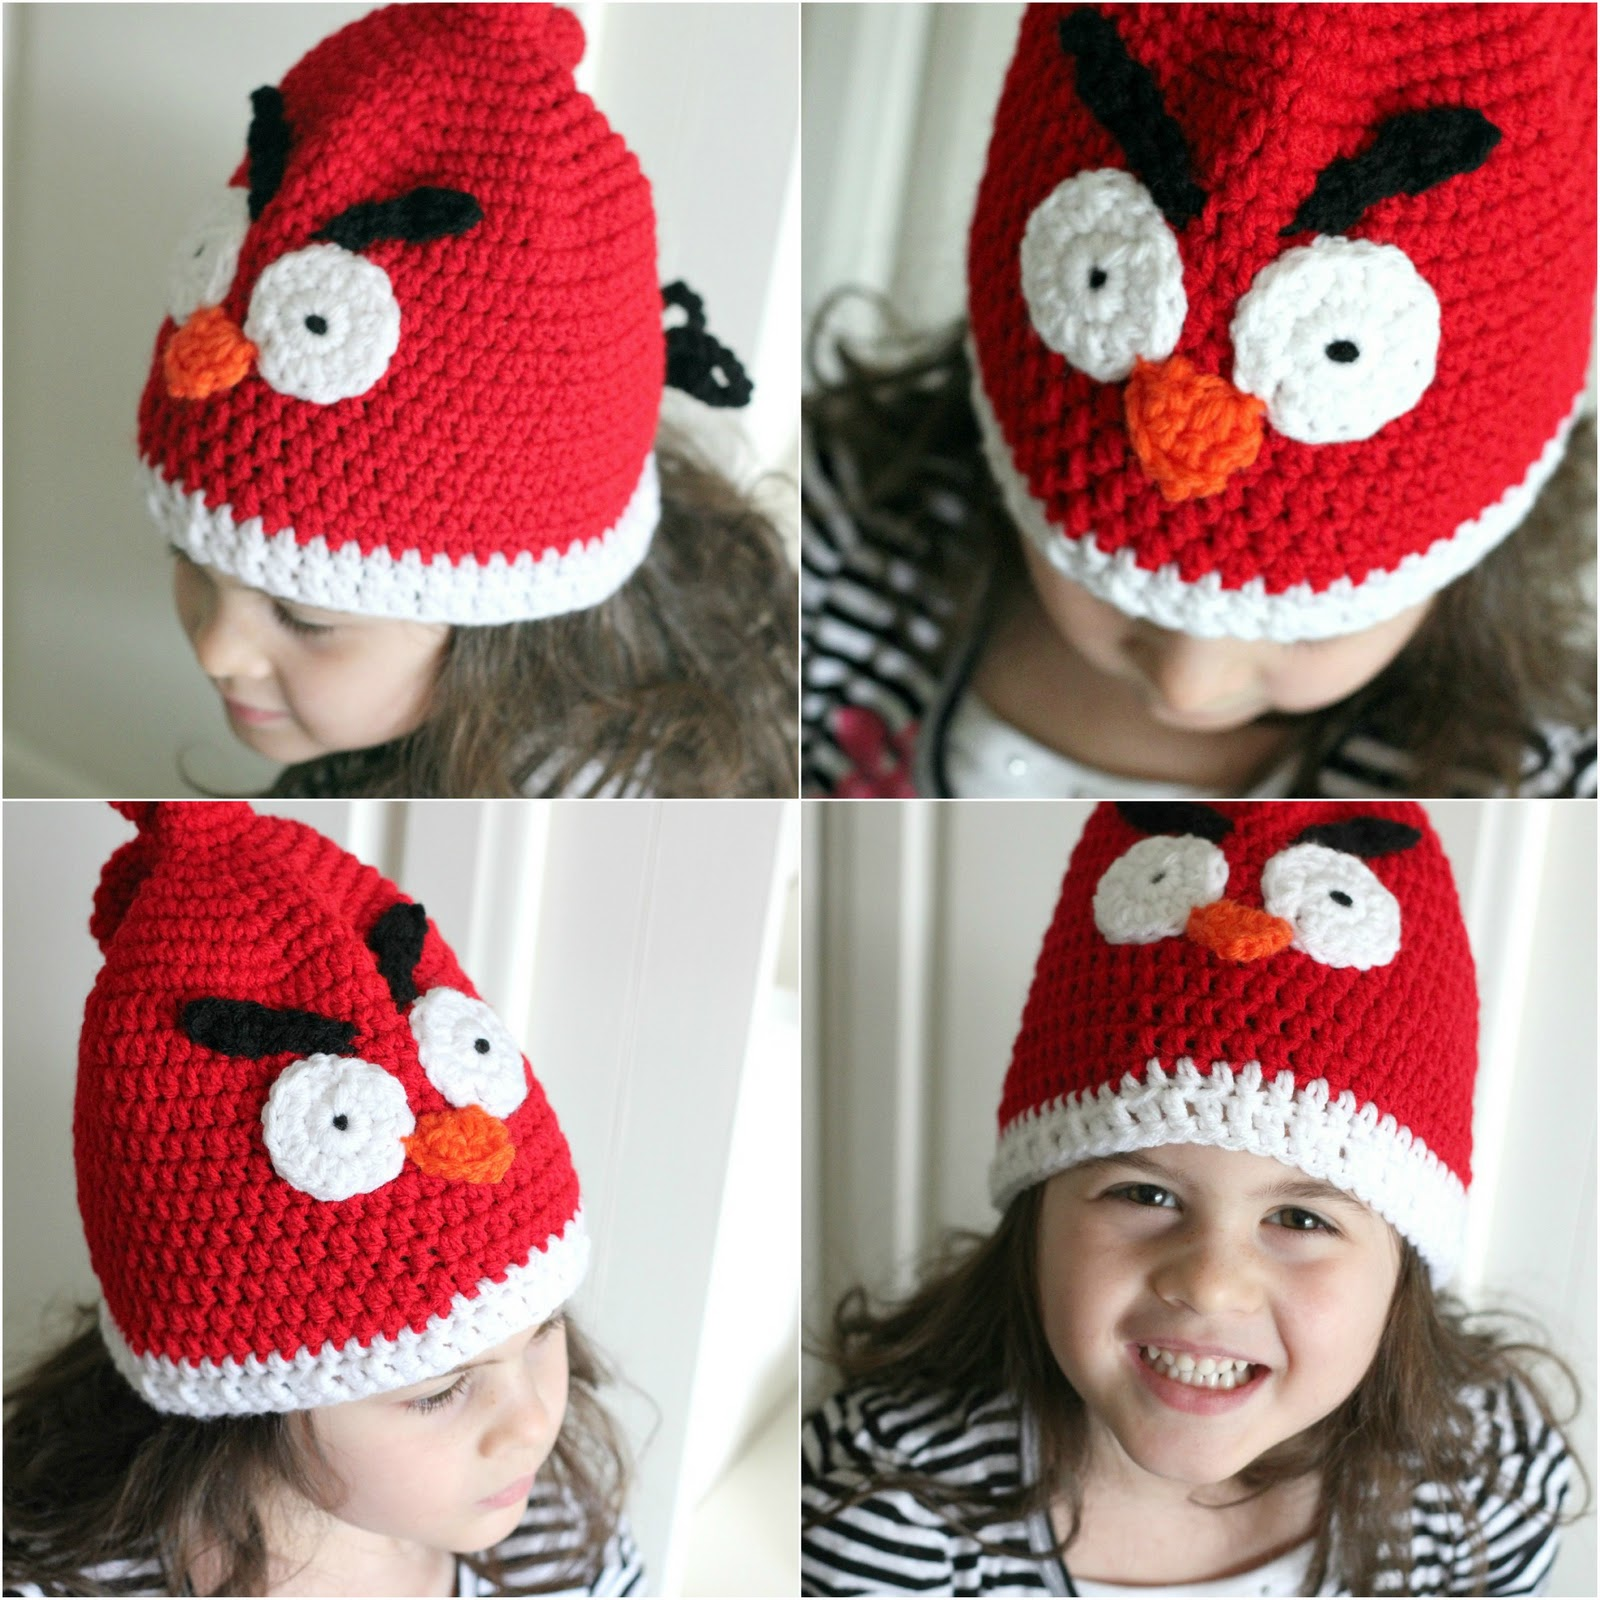 Free Red Heart Knitting and Crochet Patterns available at Bargain